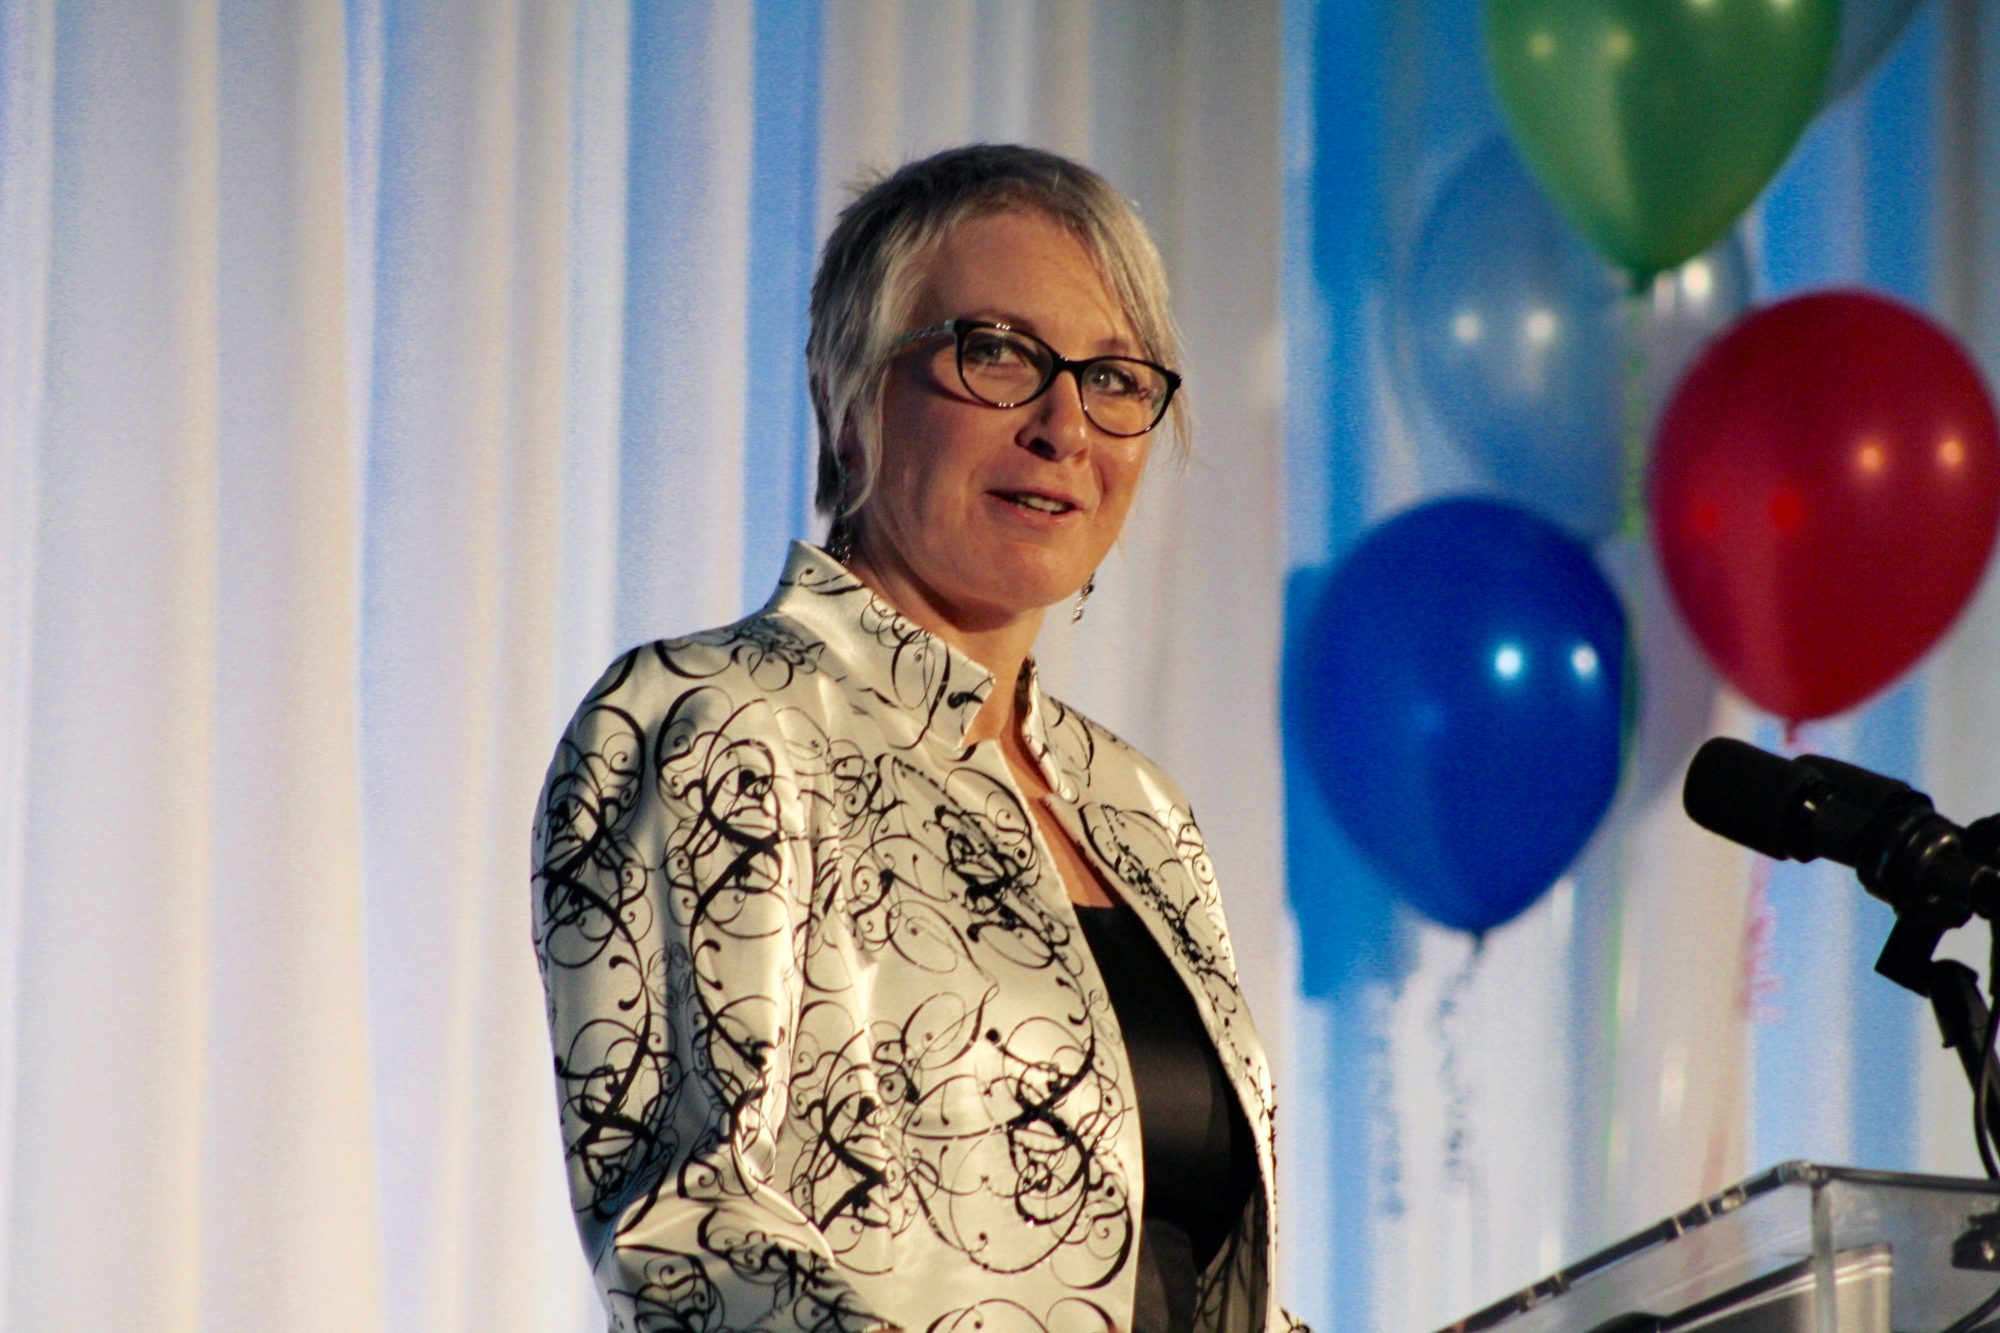 The Honourable Patty A. Hajdu, Minister of Status of Women, told the gala that much has been accomplished on gender diversity issues in recent years, but much still needs to be done.